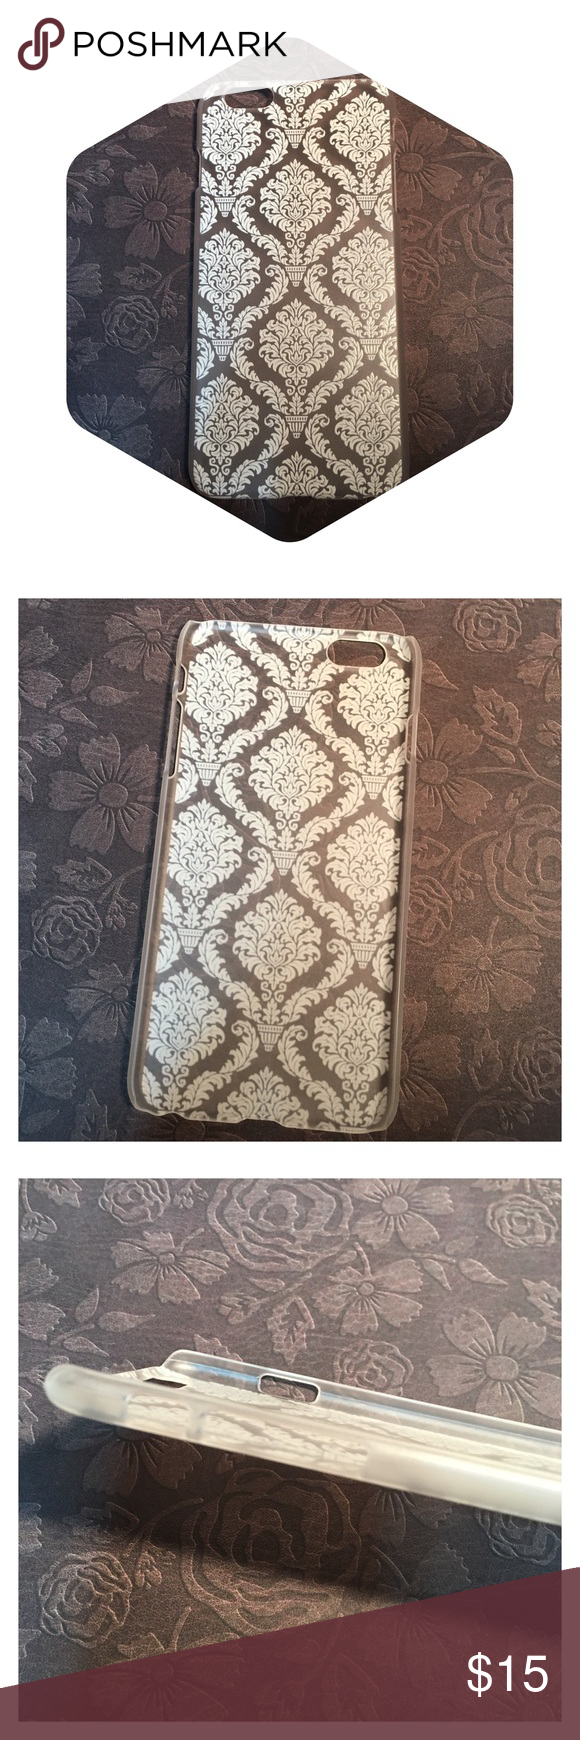 White Damask Hard iPhone 6plus case! Brand new!!! Beautiful White Damask Hard iPhone 6plus case! Brand new!!! Accessories Phone Cases